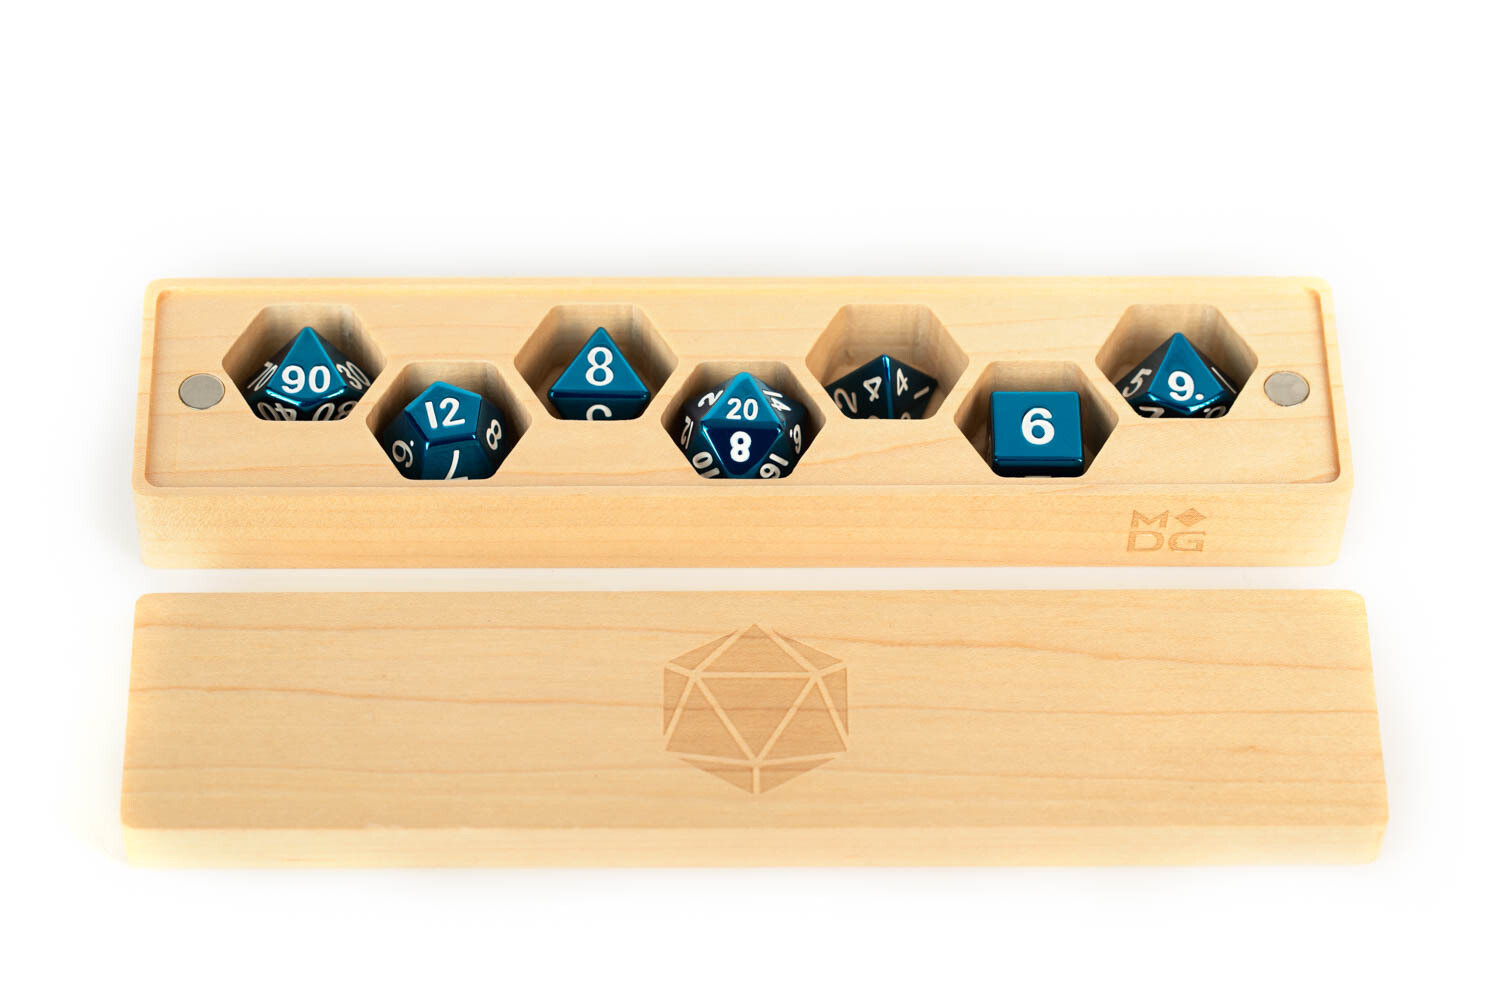 Premium Wood Dice Vault Case Polyhedral Gaming Dice RPG Role Play - Maple